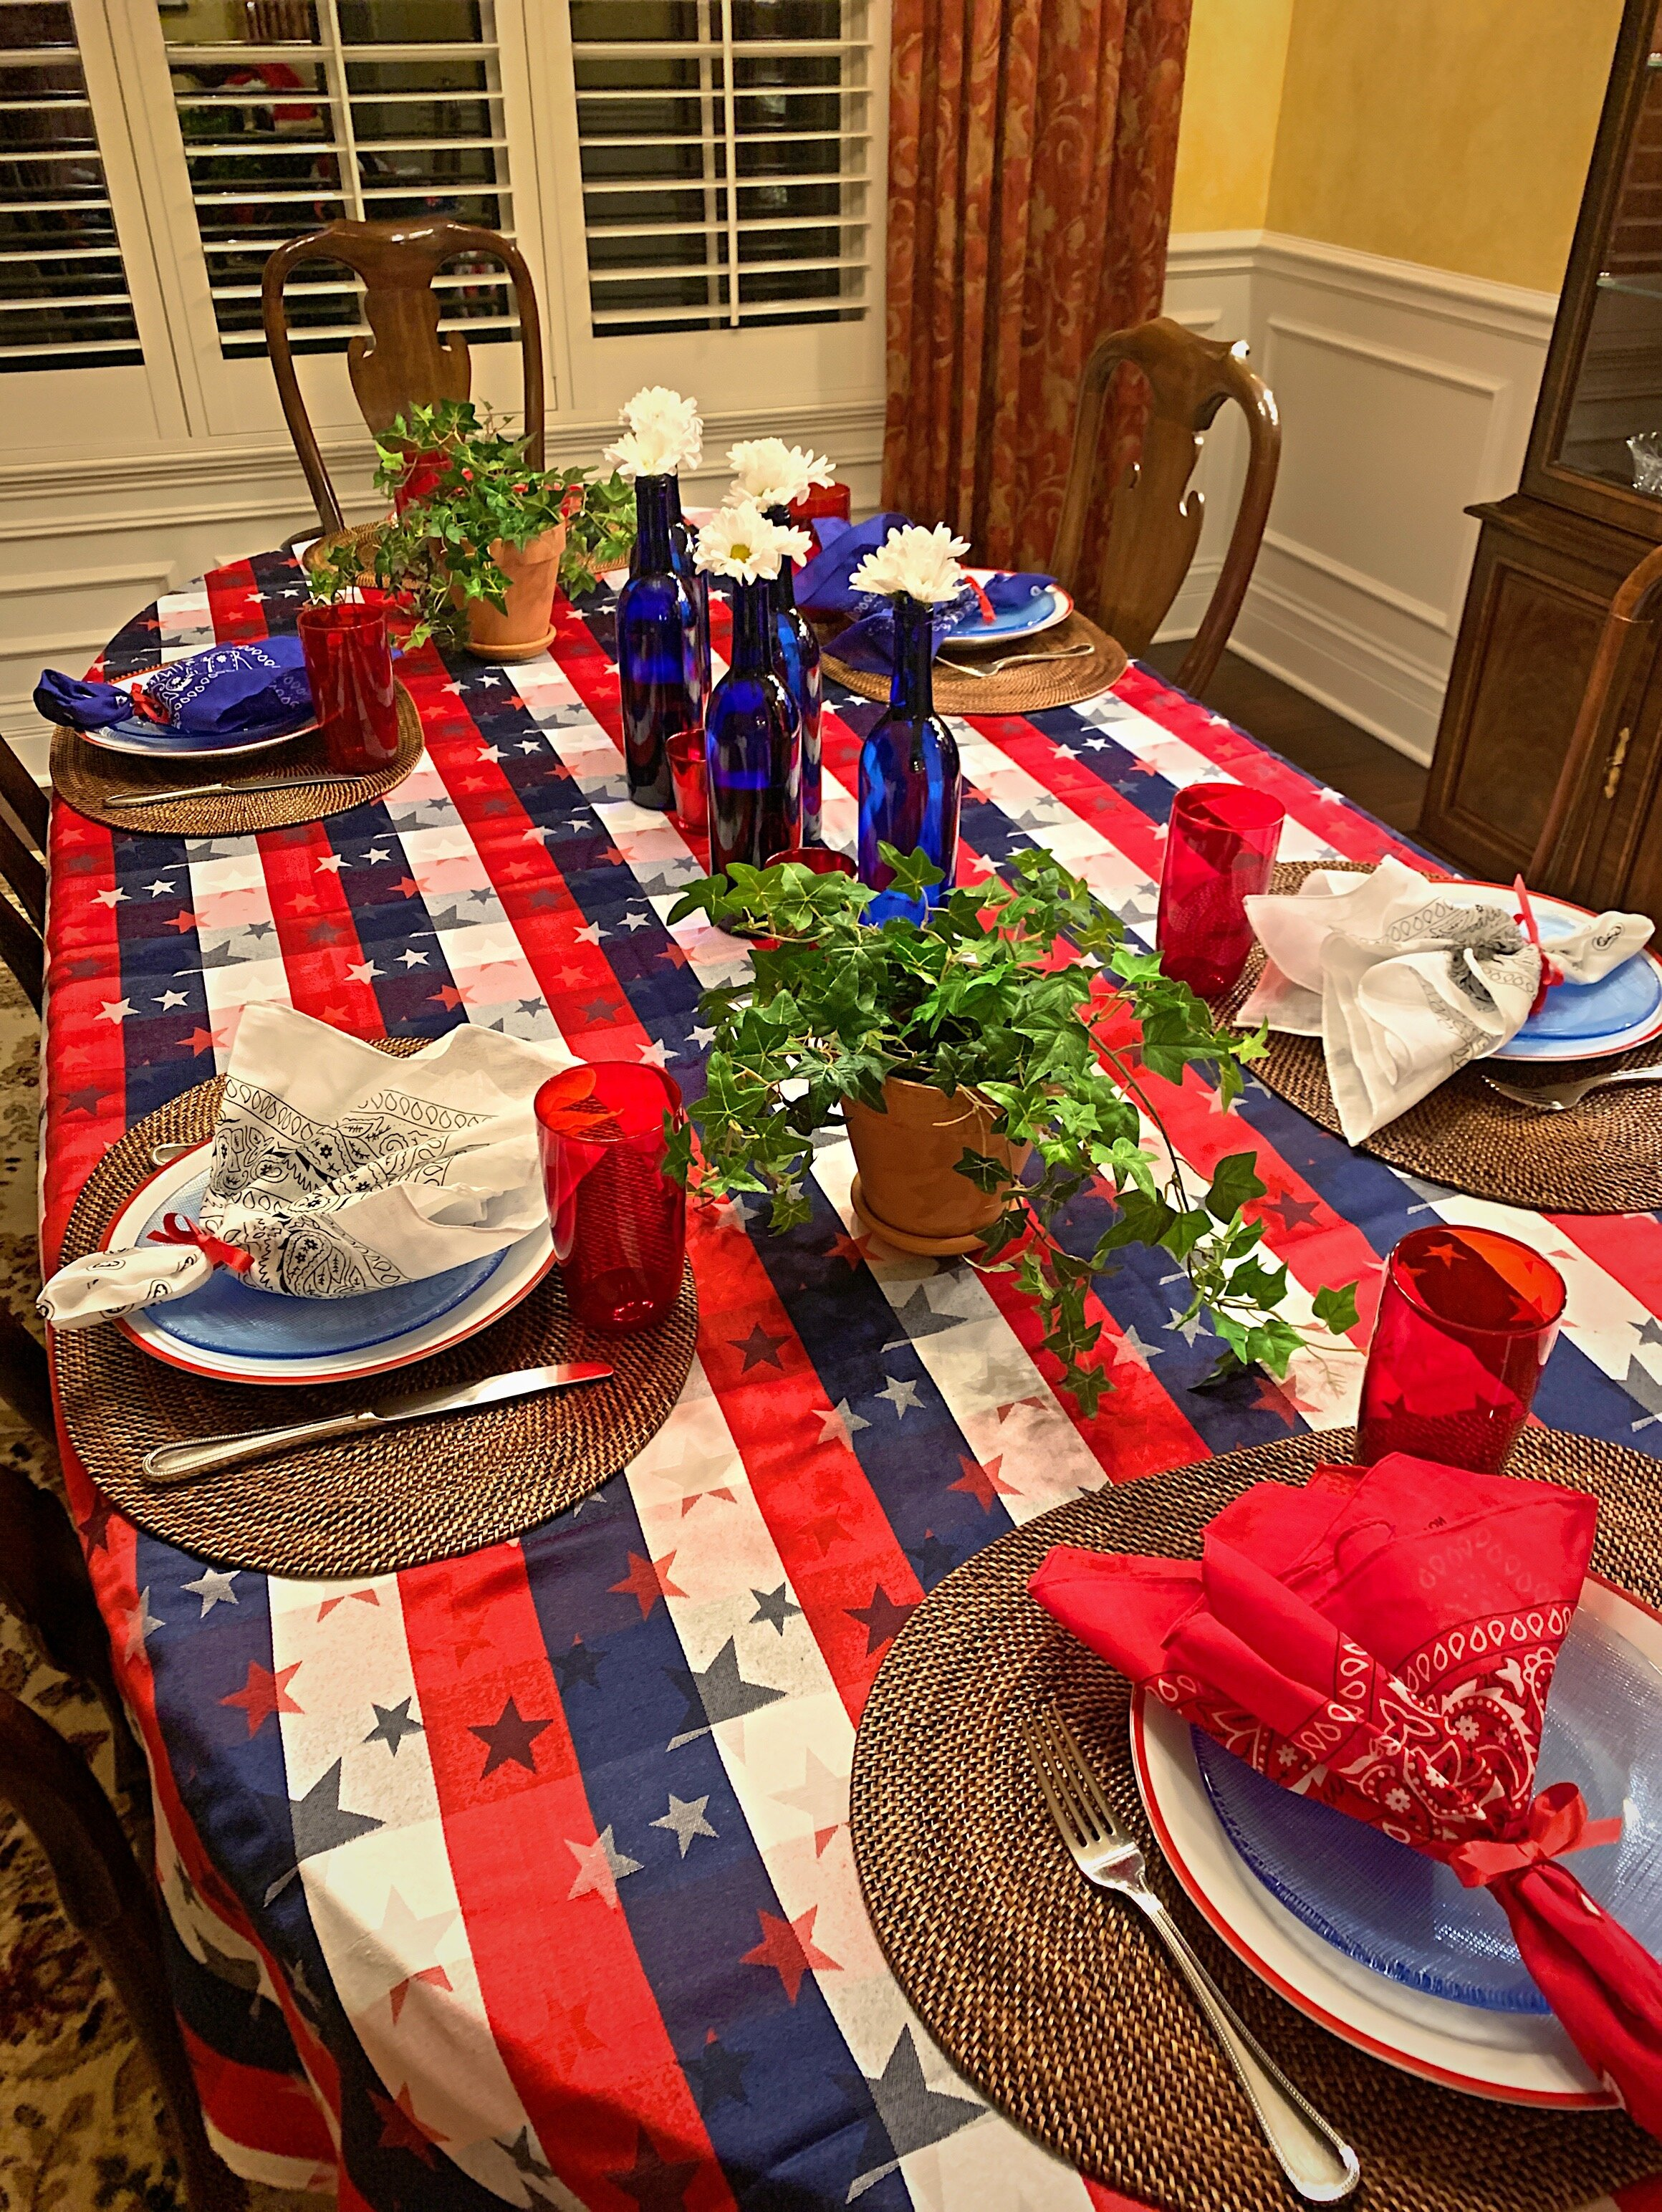 the finished red, white and blue table setting using red, white and blue bandanas, blue bottles and green ivy.  So freh and festive!